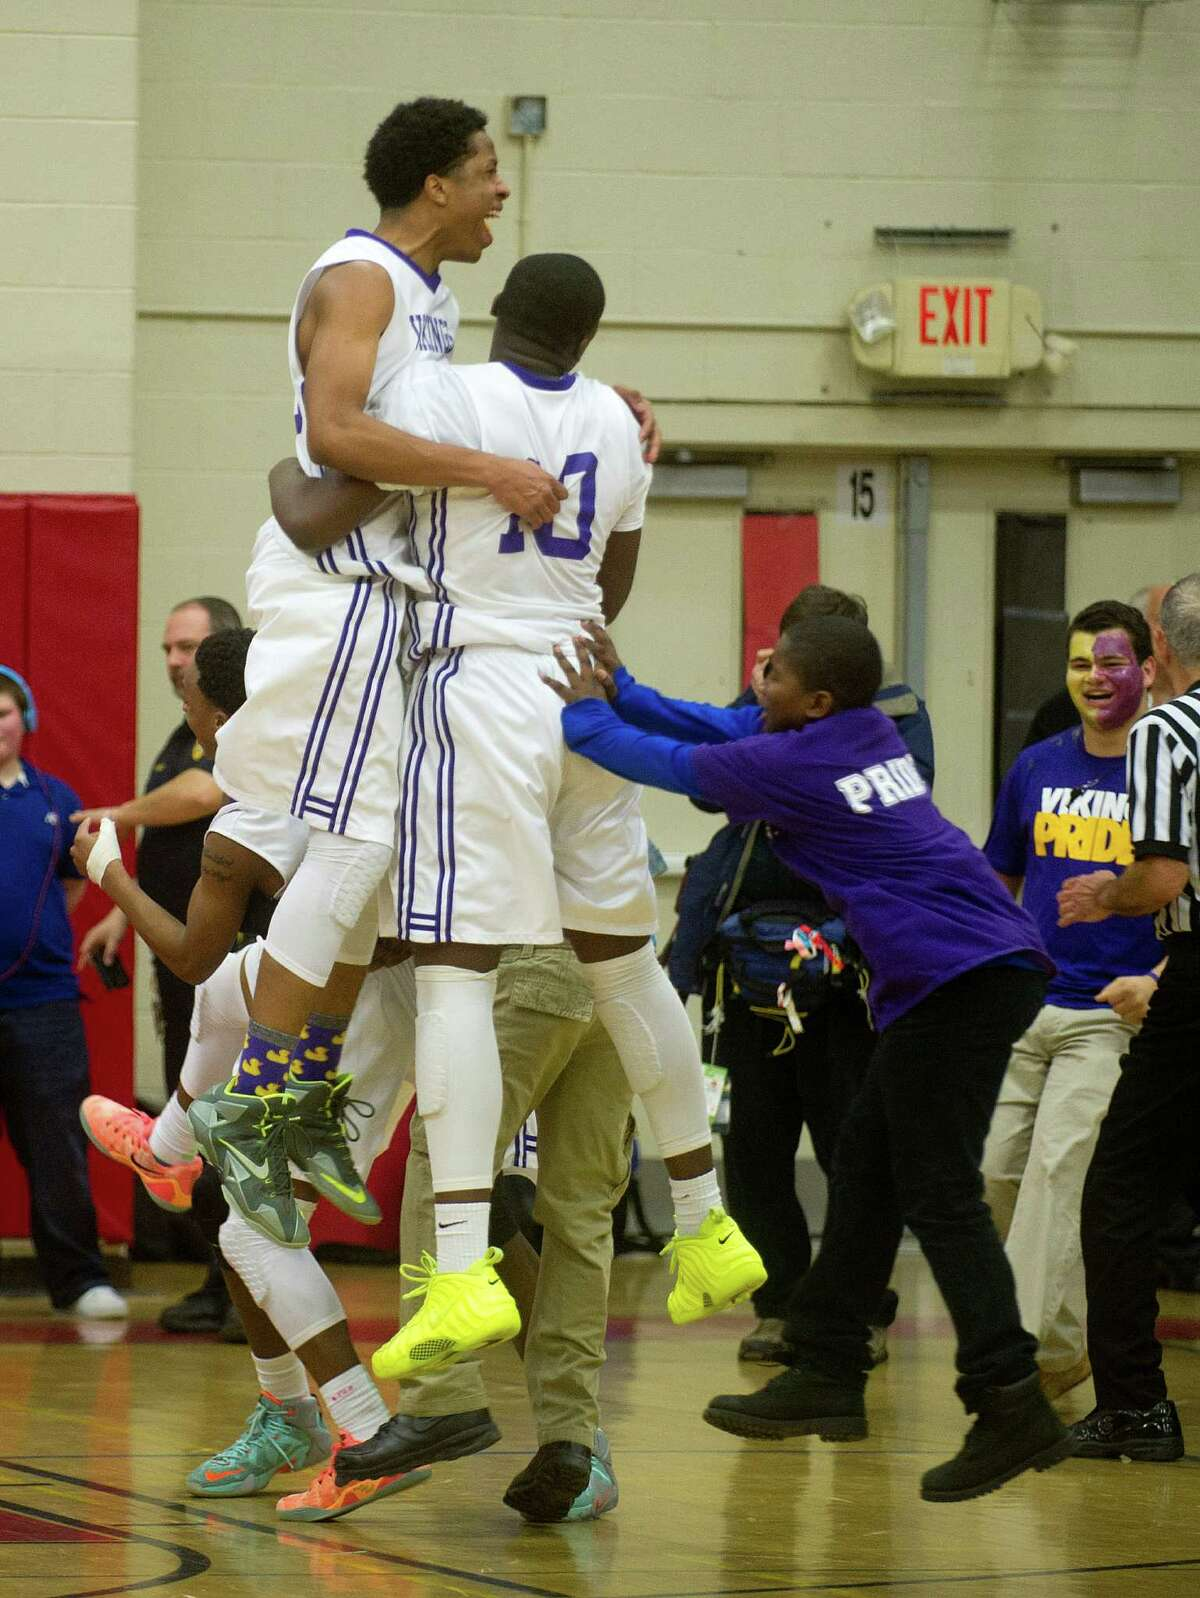 Westhill players celebrate winning Friday's FCIAC Boys Basketball Championship game between Westhill and Norwalk High Schools at Fairfield Warde High School in Fairfield, Conn., on Friday, March 6, 2015.